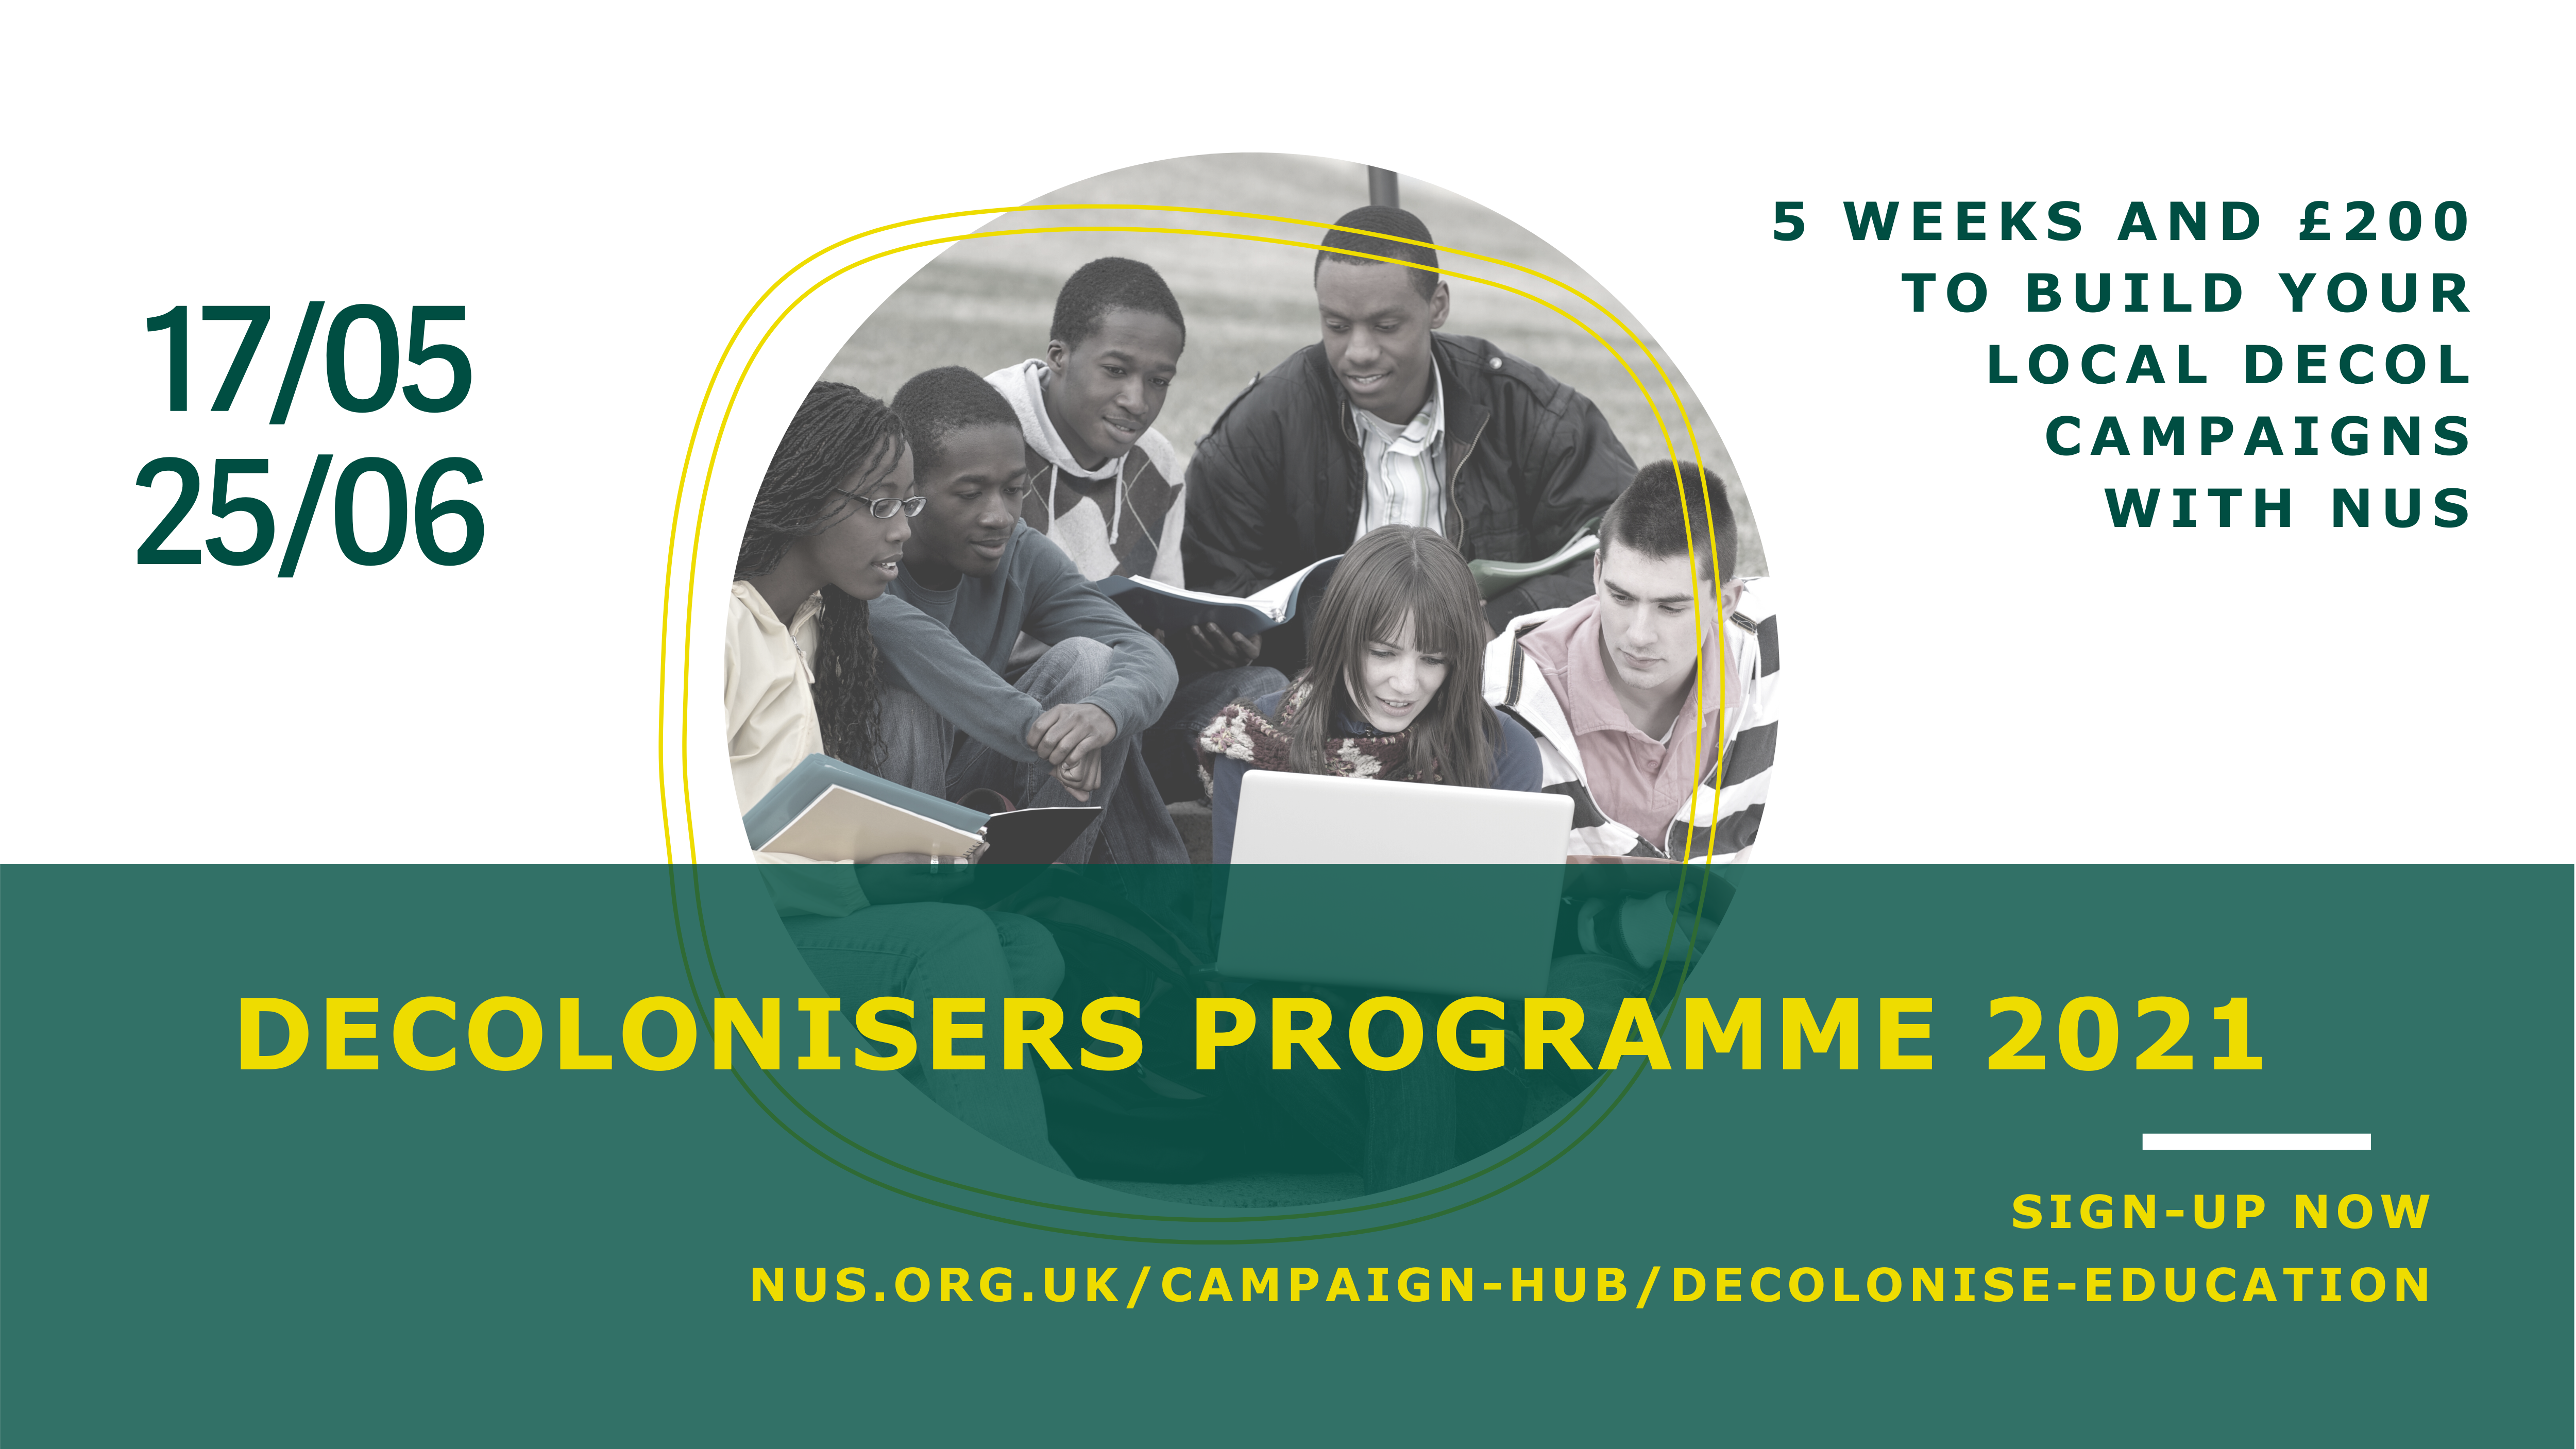 Decolonisers Programme 2021 - 5 weeks and £200 to build your local decol campaigns with NUS - from the week of the 17th May to the 25th June 2021 - Sign-up now nus.org.uk/campaign-hub/decolonise-education